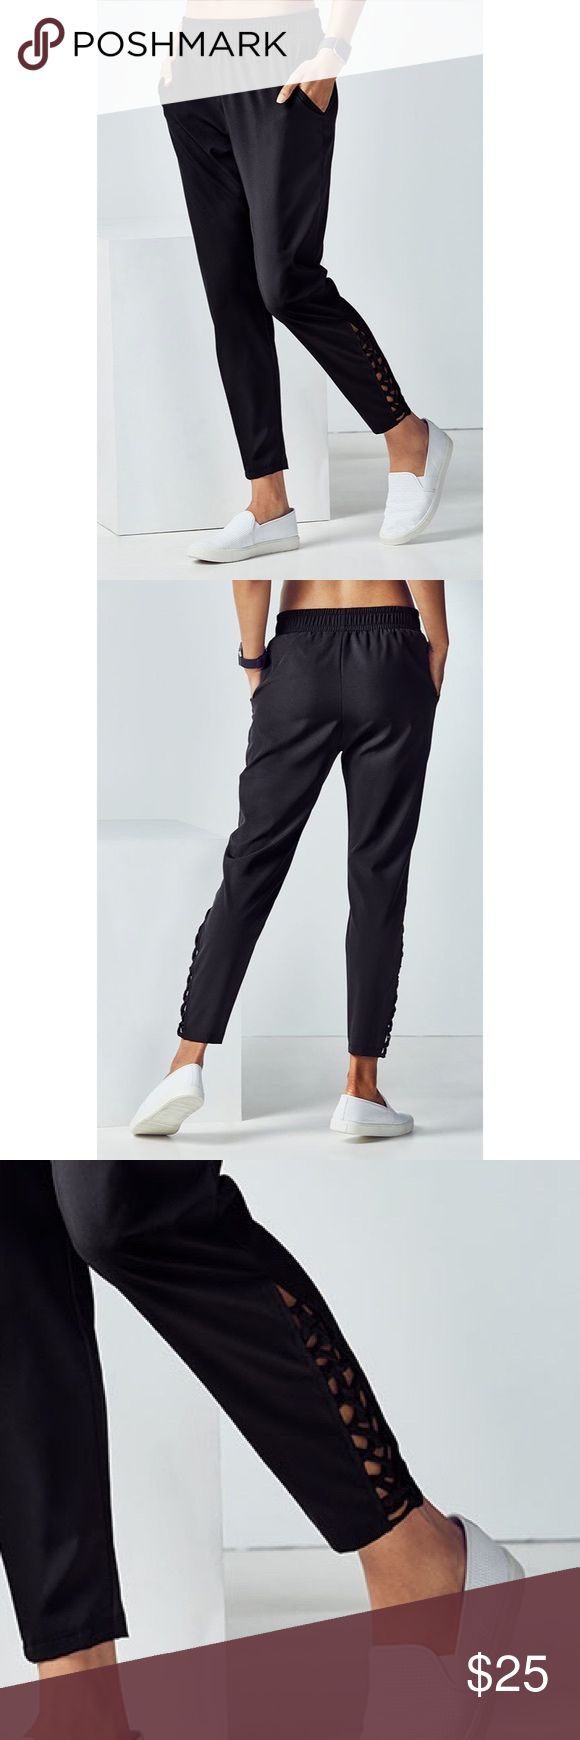 Brand new Fabletics Tiana Pant Sz Small Tall Brand new Fabletics Tiana pant with side pockets and woven ankle detail. Really great pants for running errands or to add to your athleisure wardrobe. Purchased from another Poshmark seller, just a bit too big on me. Size Small Tall Fabletics Pants Track Pants & Joggers